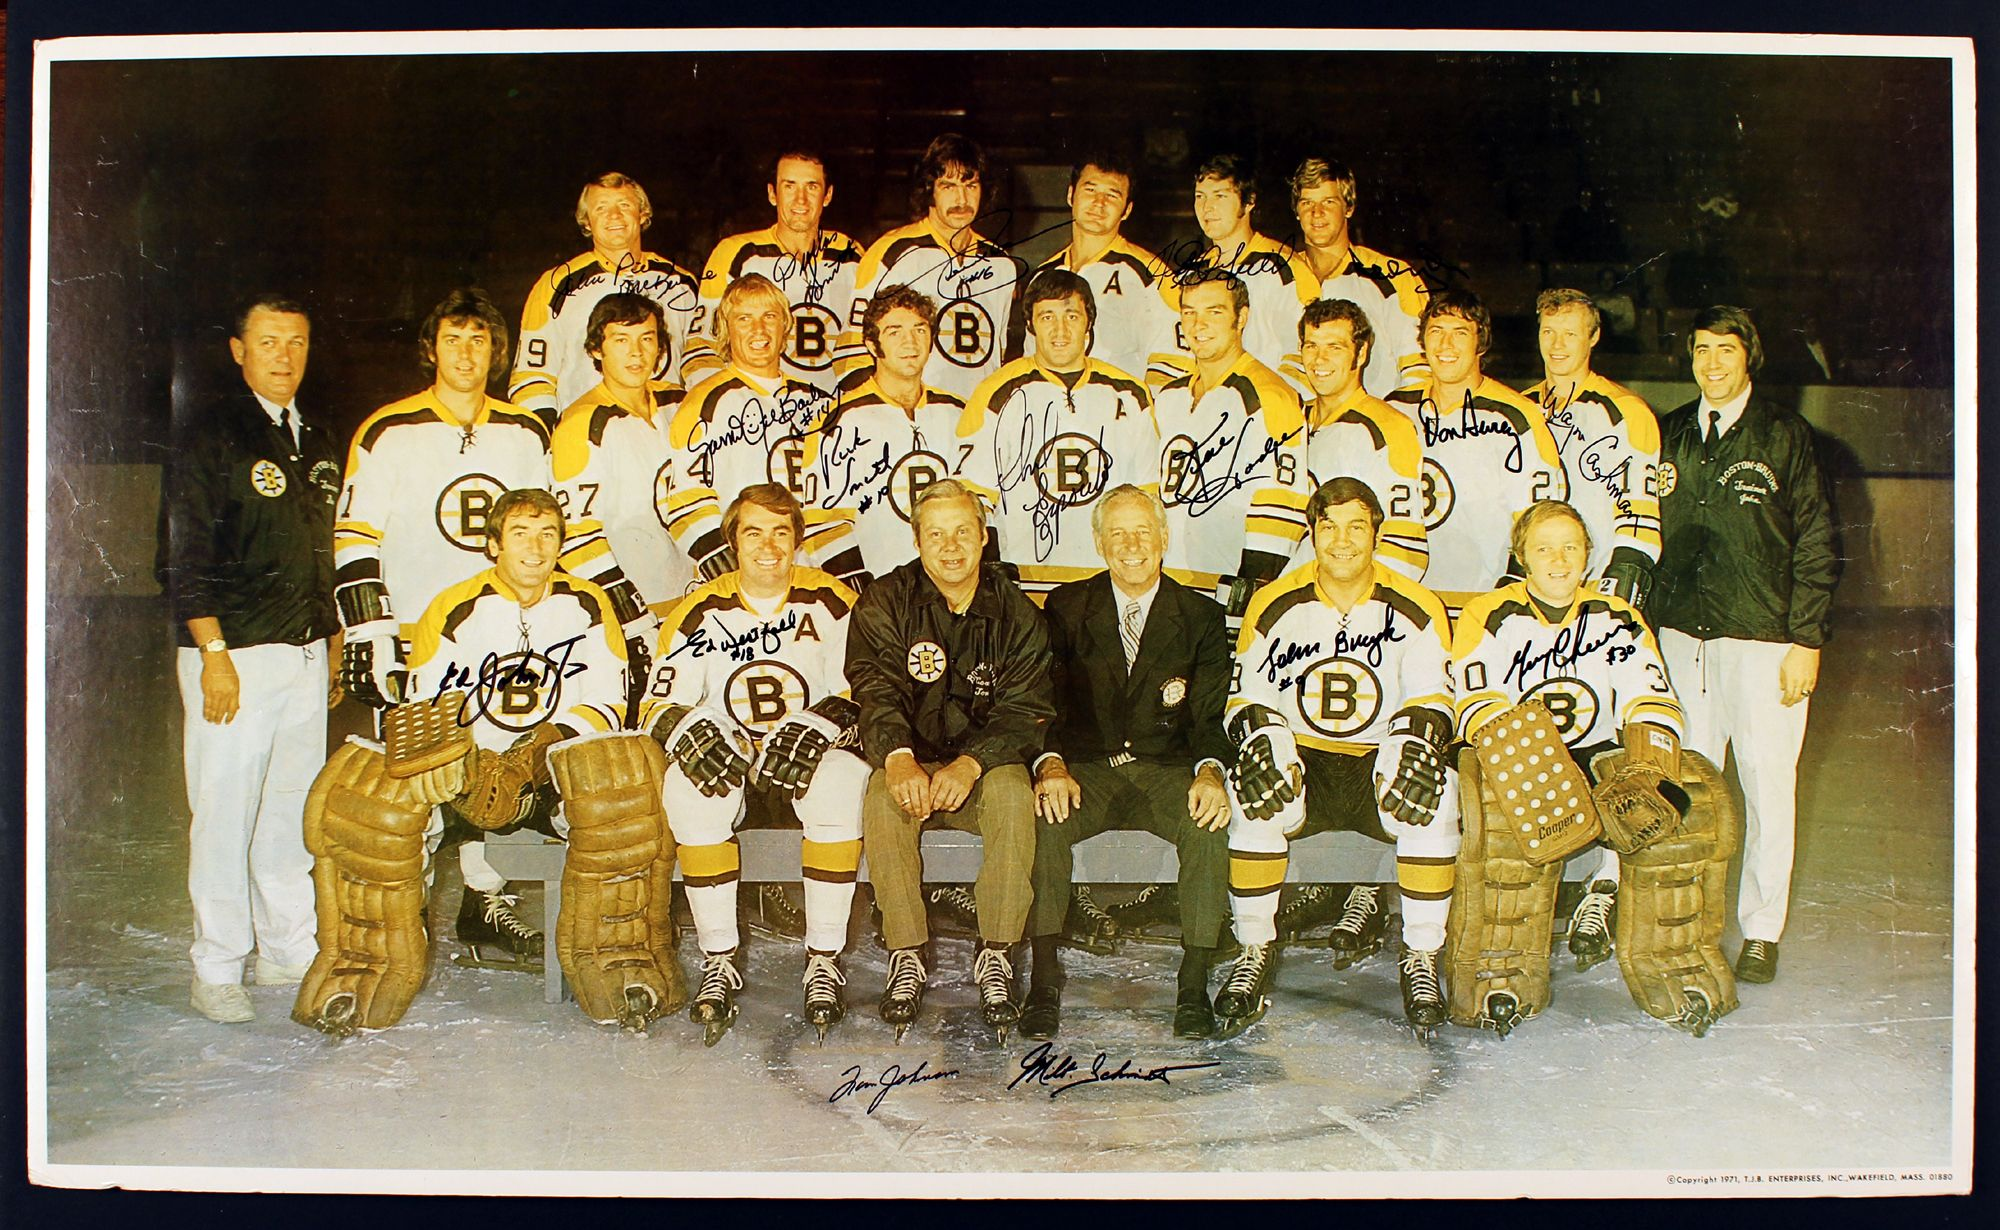 nhl 1971-72 boston bruins team photo - Google Search ... Bruins Roster 1972